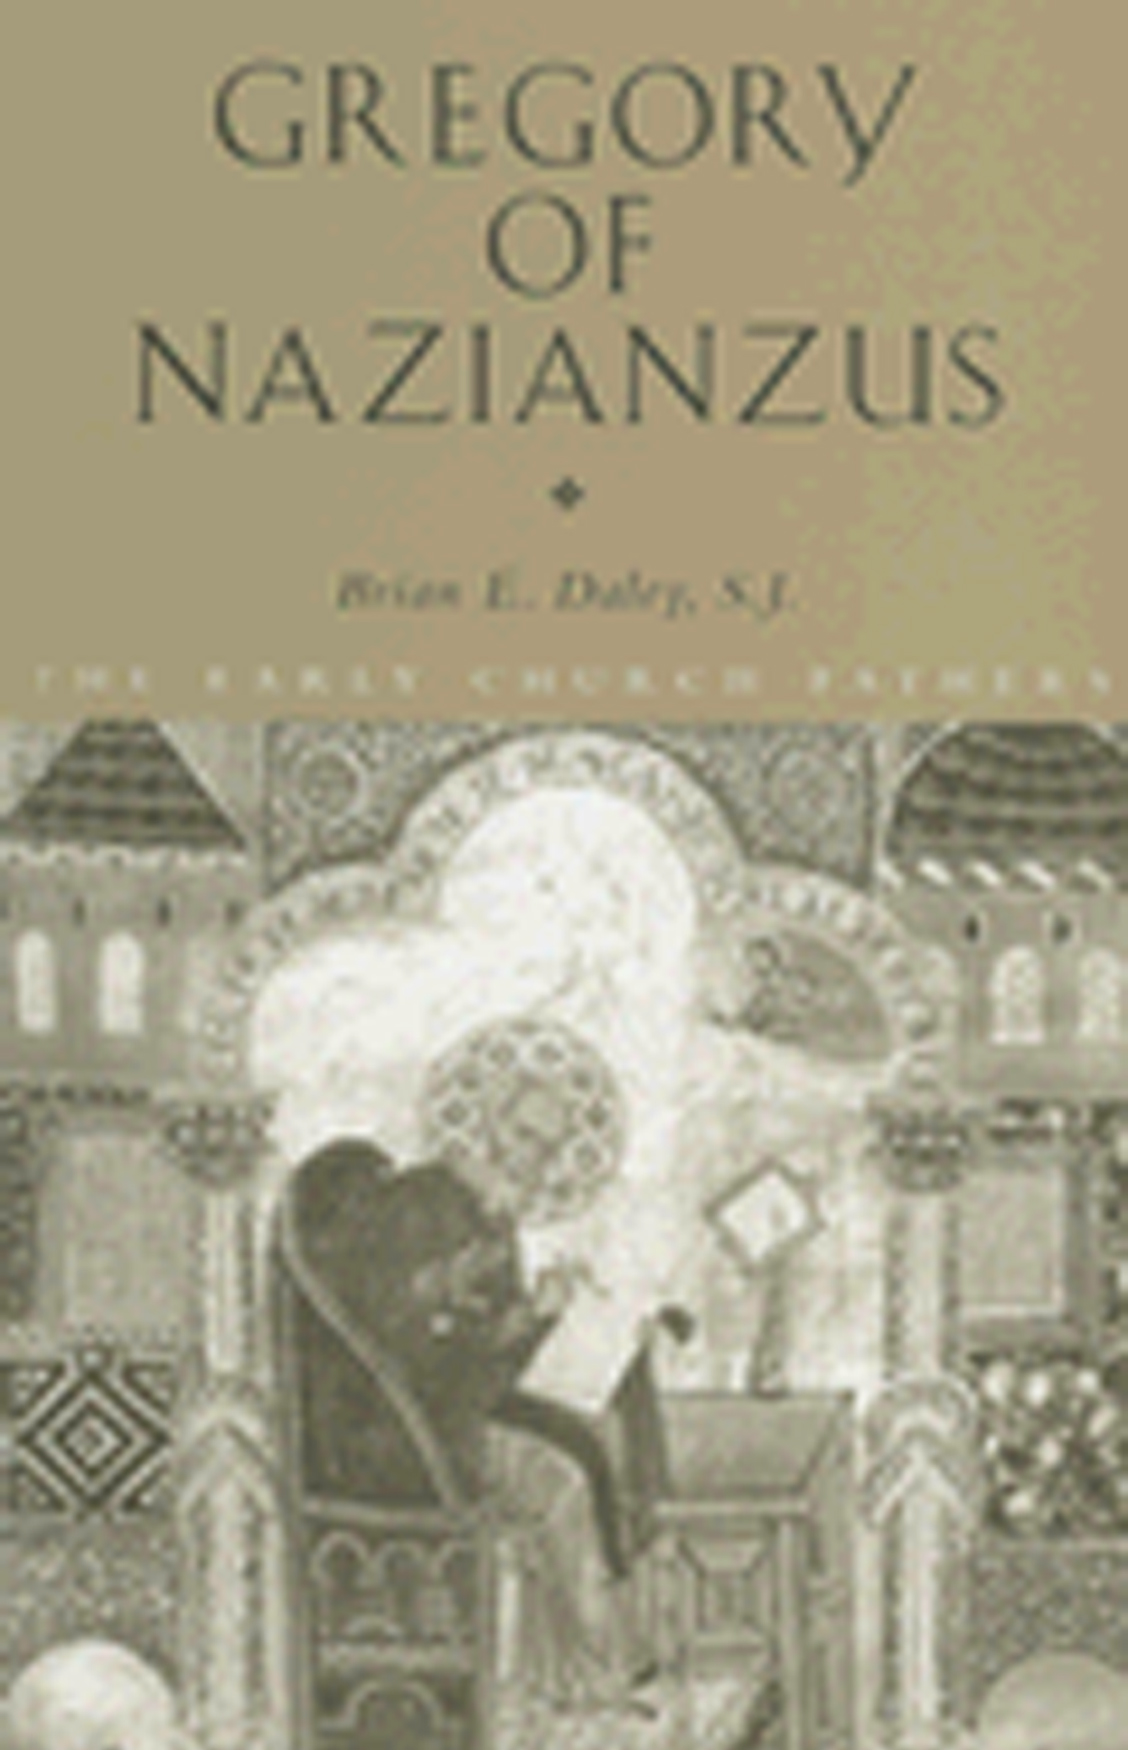 Gregory of Nazianzus By Brian E. Daley, S.J. 108-9780415121811